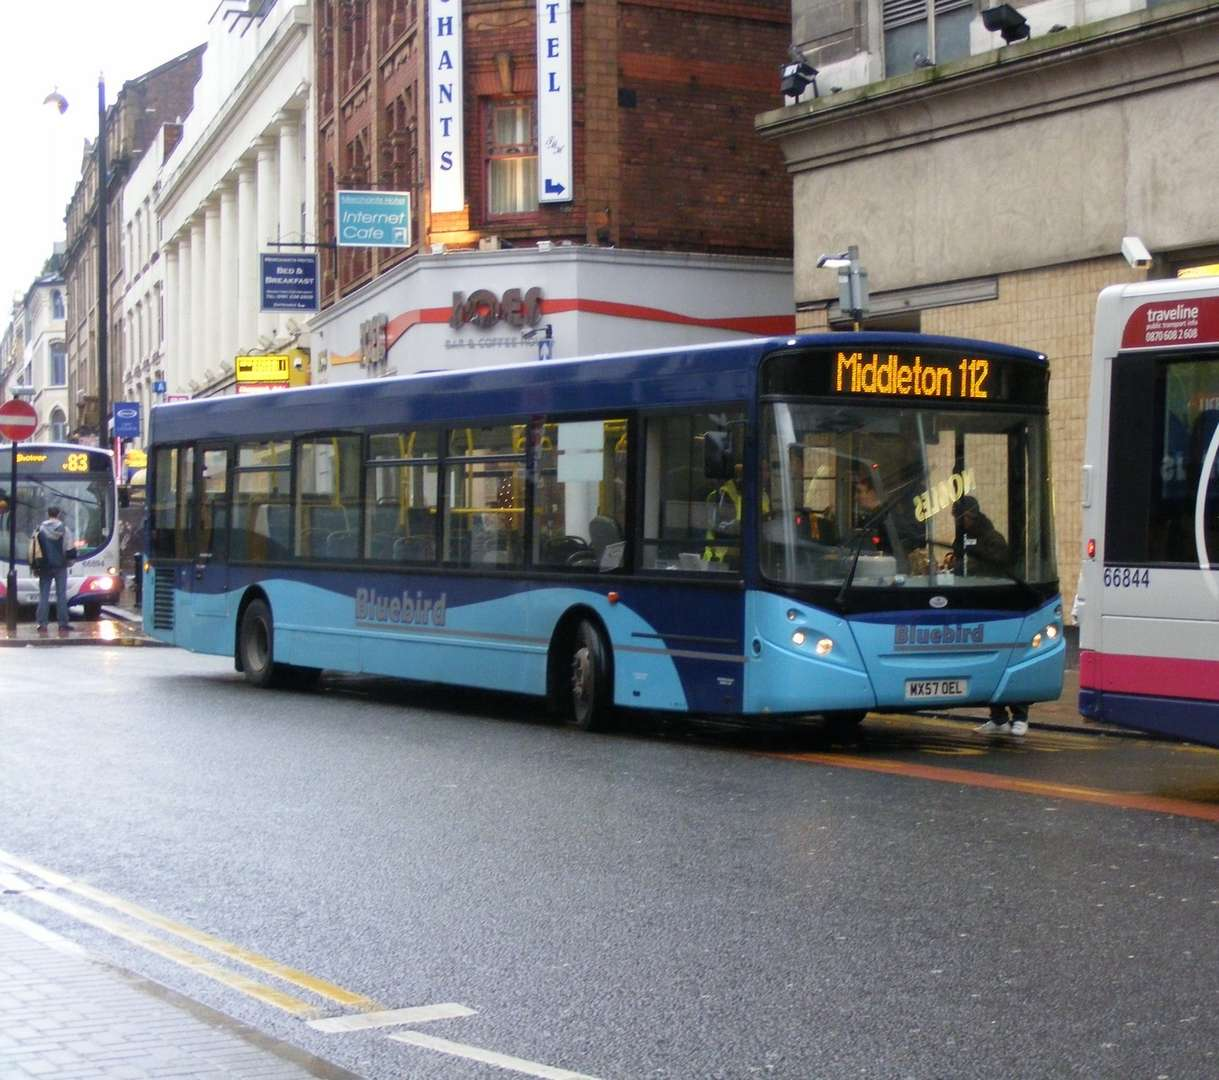 Blue Bird Bus #7928522